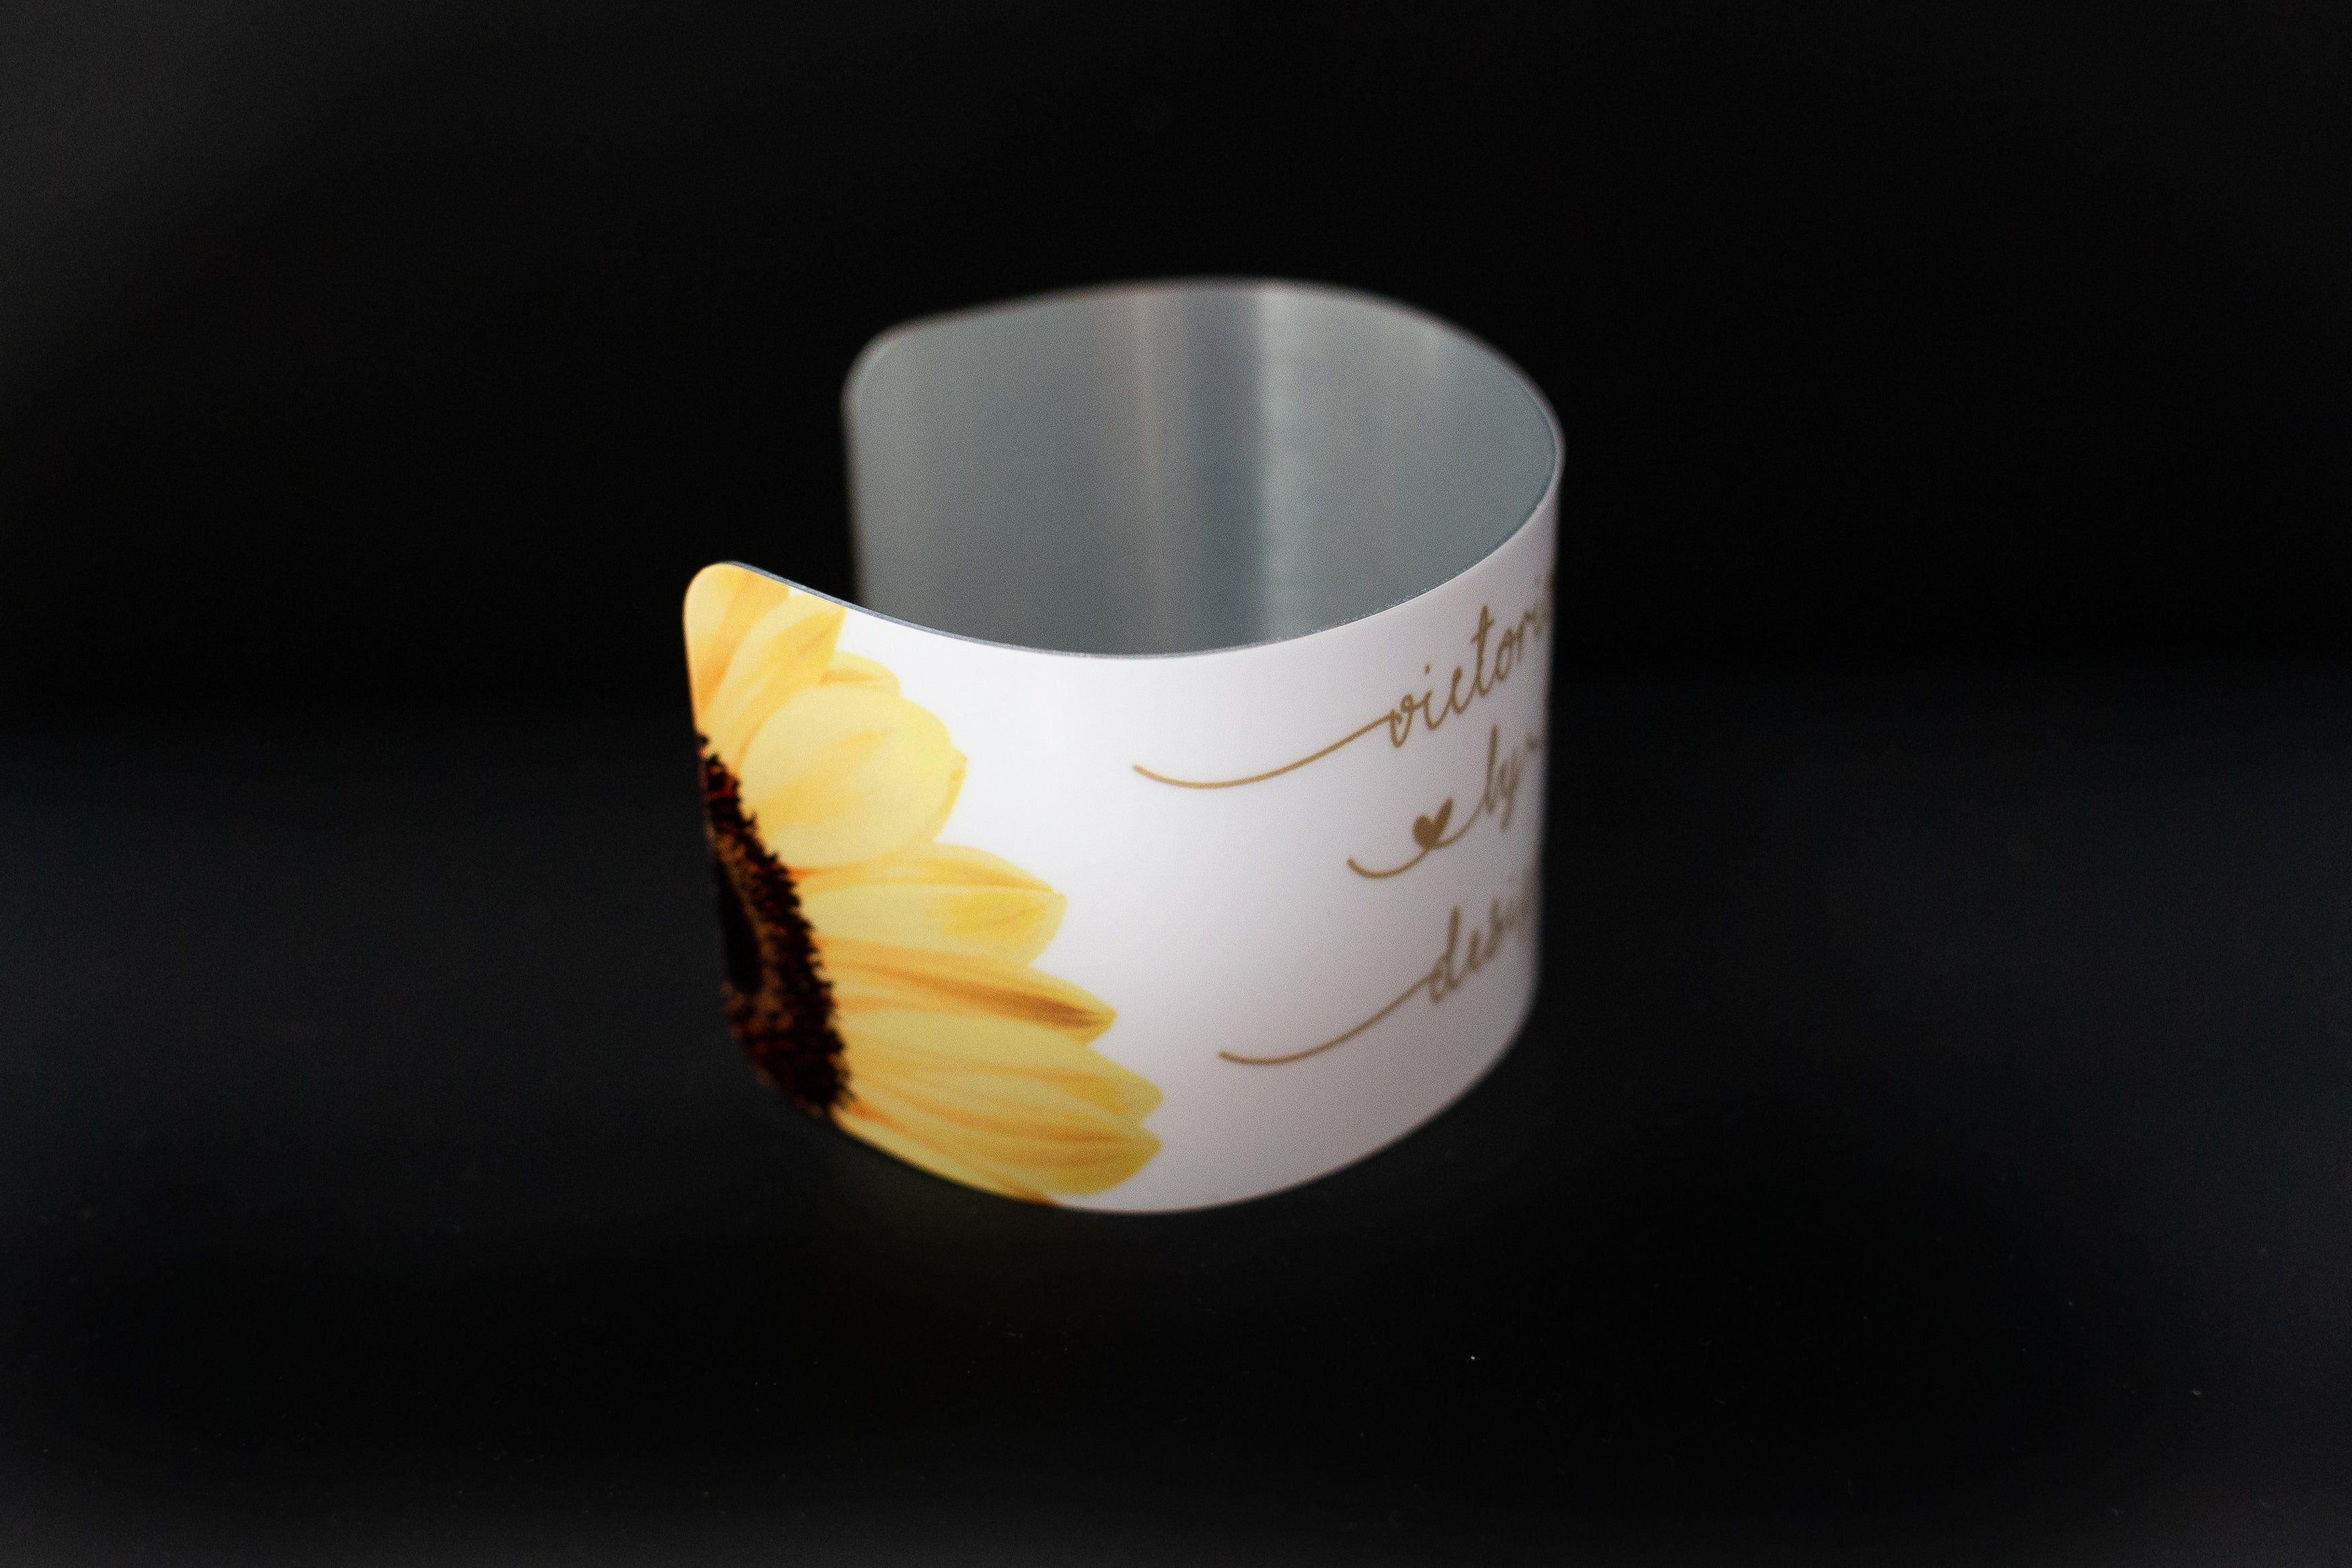 Cuff  bracelet- Victorious by Design